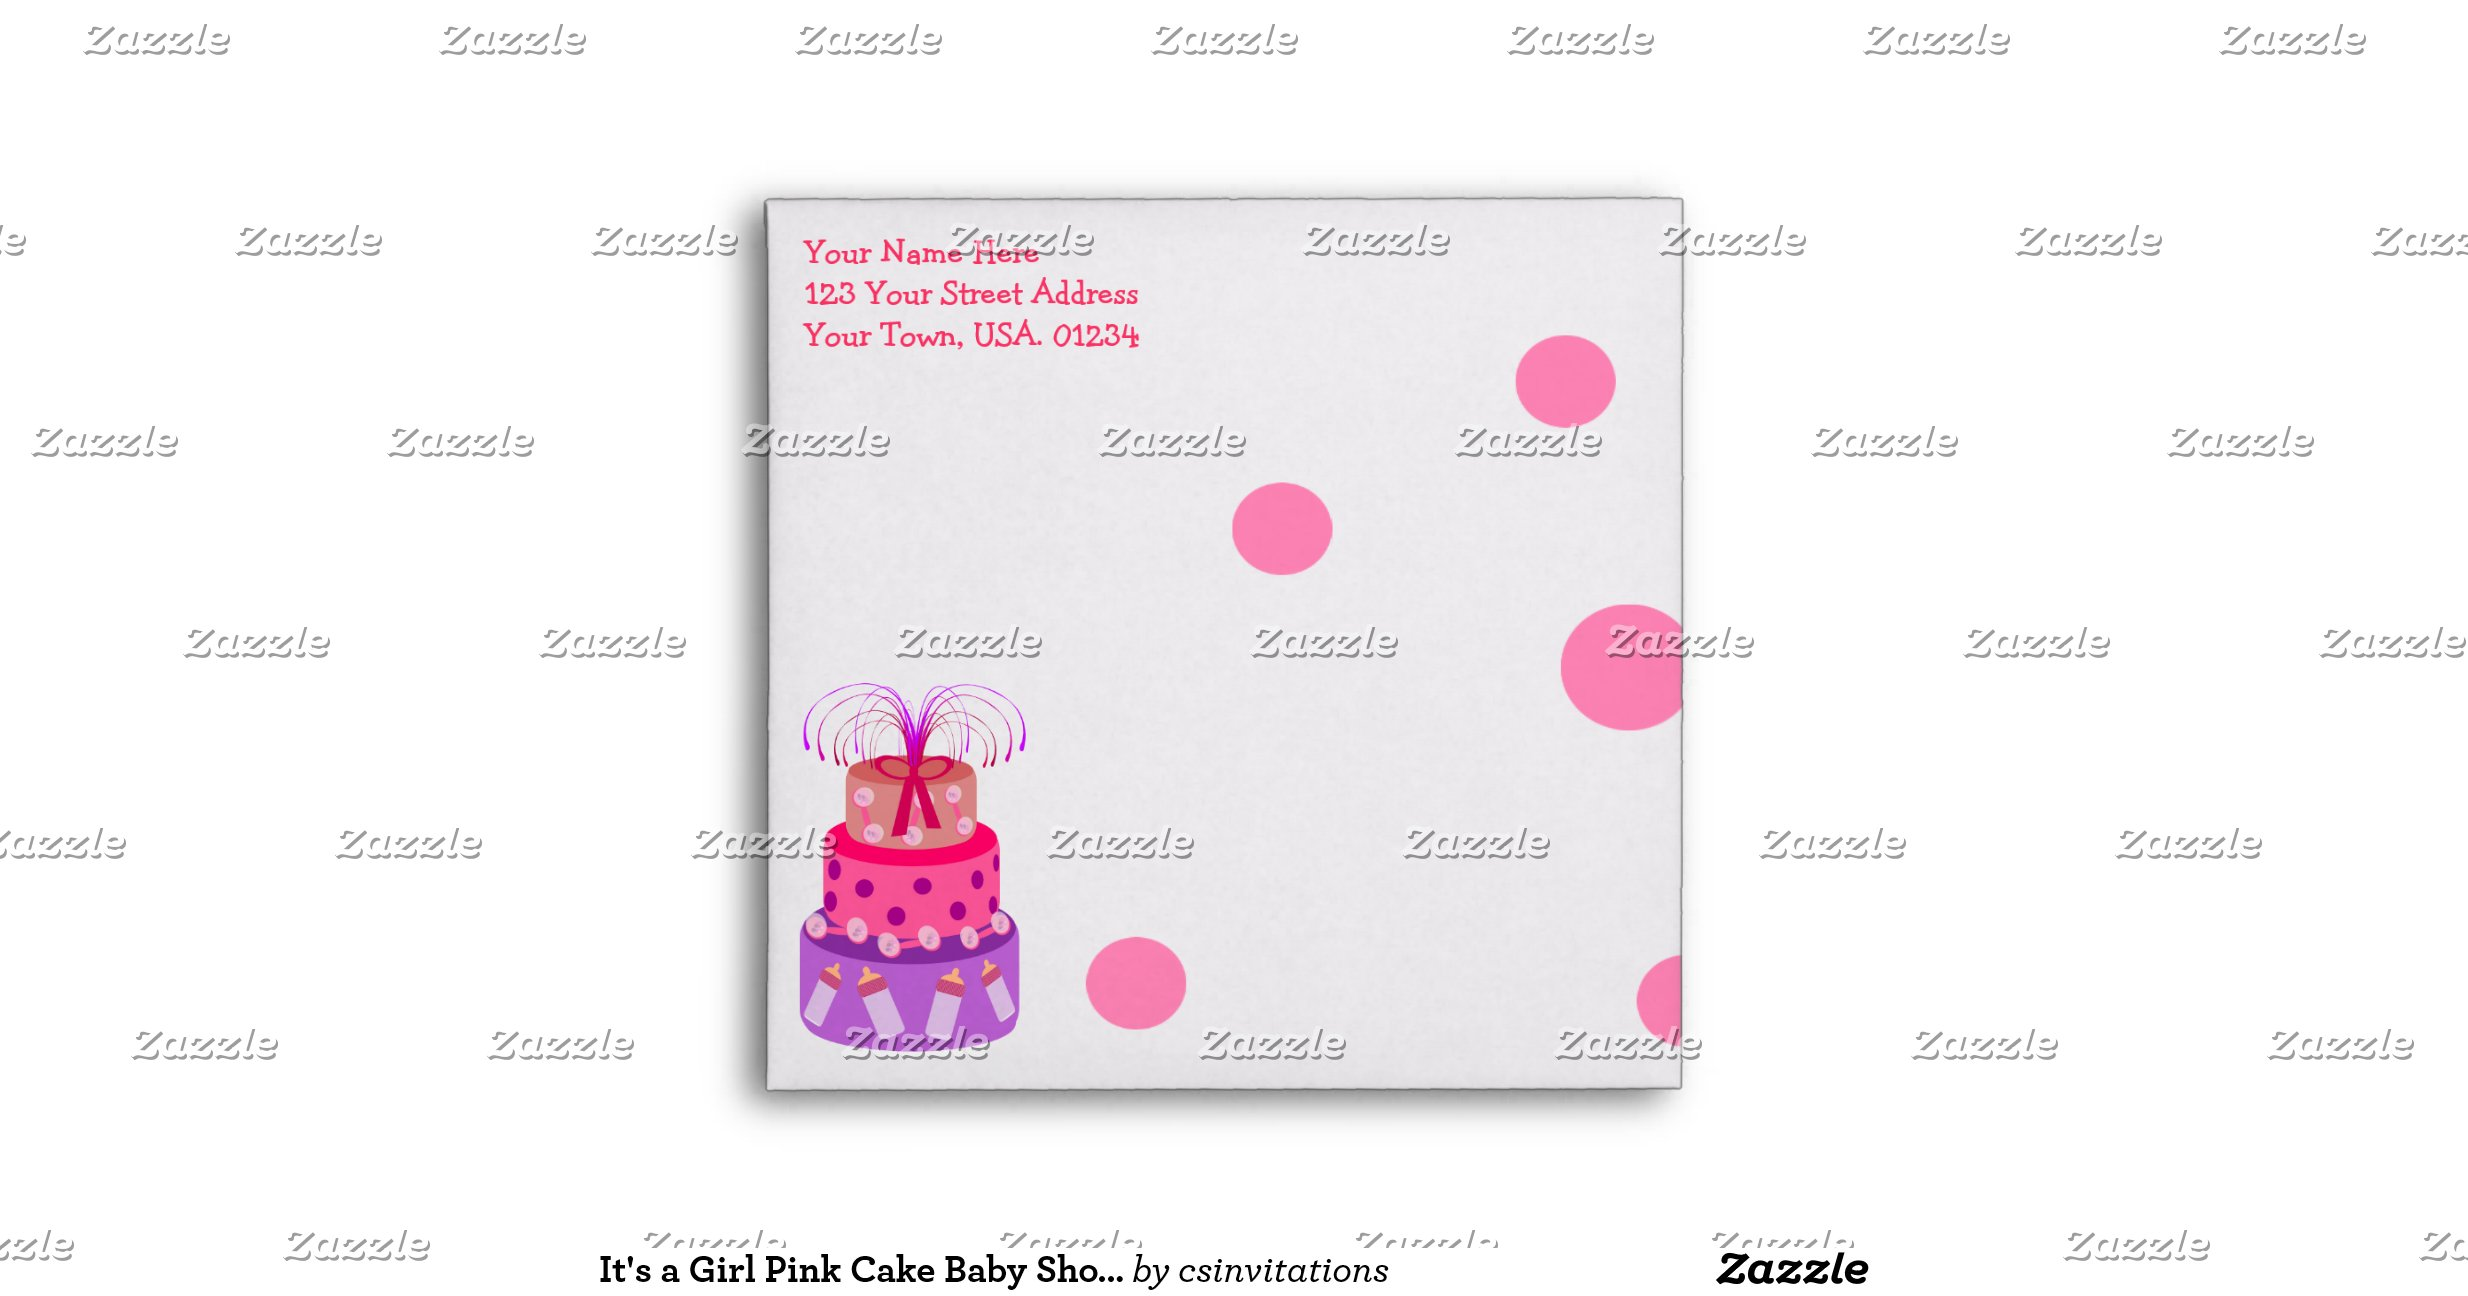 its a girl pink cake baby shower envelopes